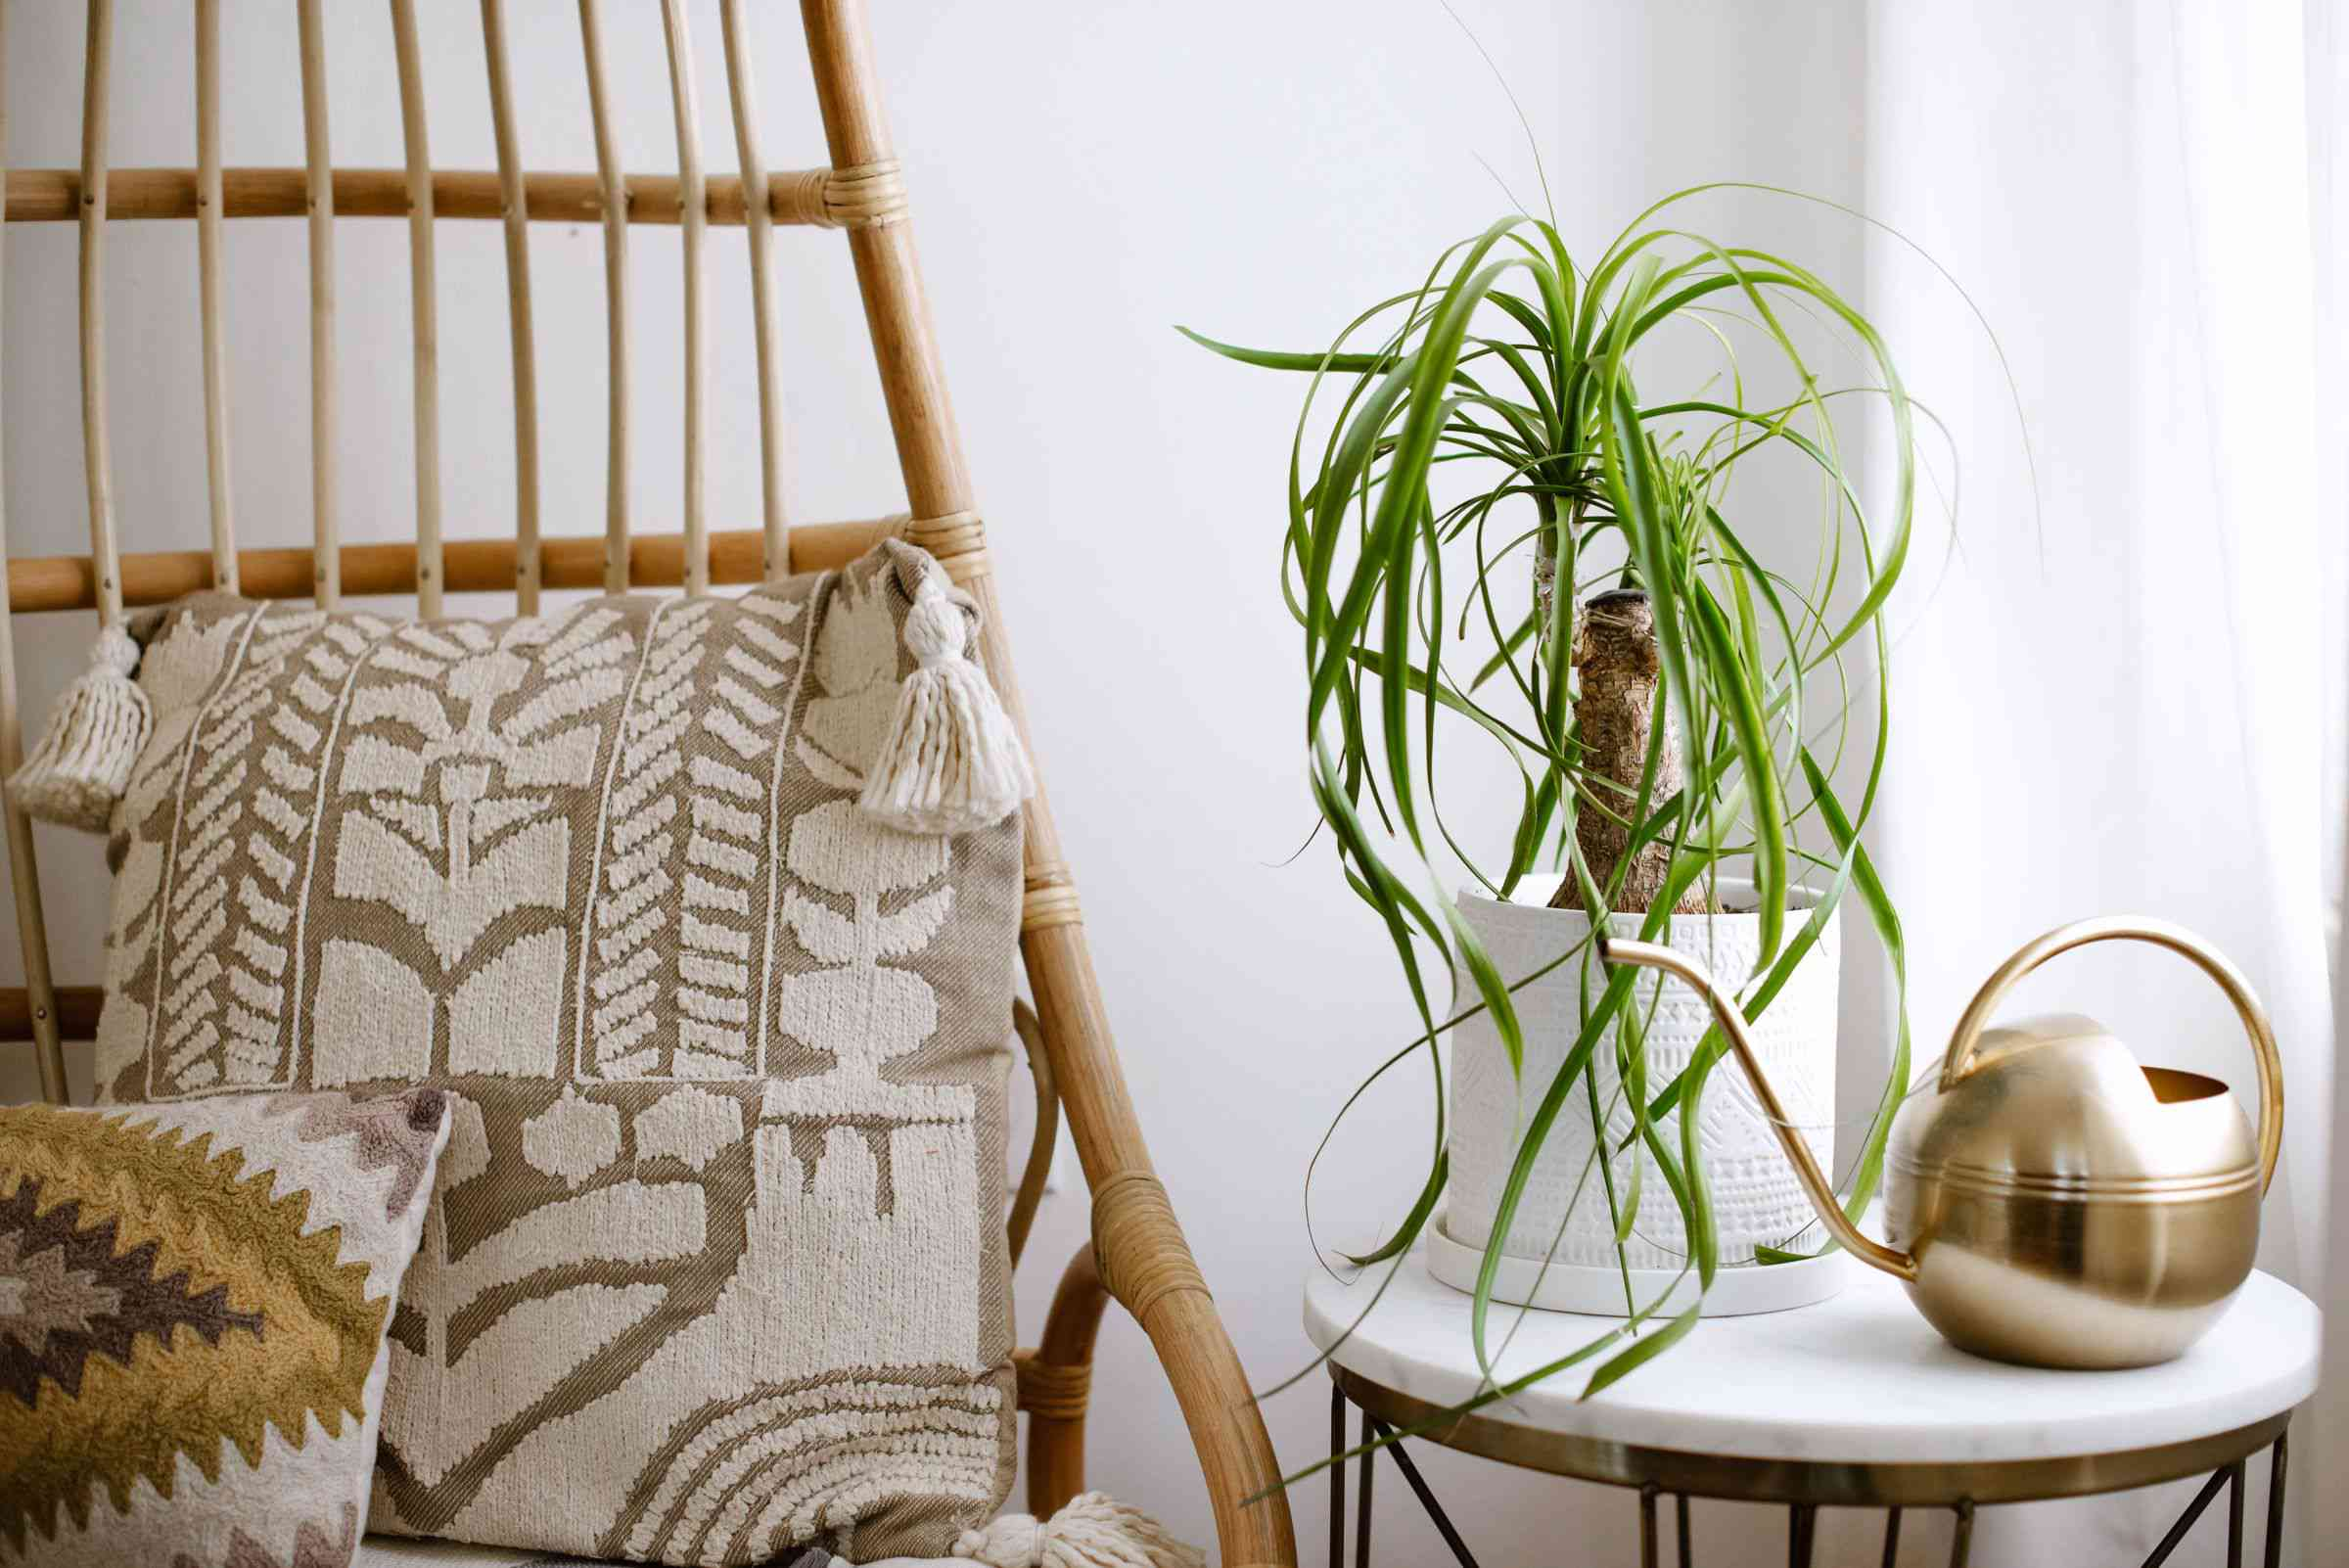 Ponytail palm in white pot with long wispy fronds next to gold watering can and patterned pillows